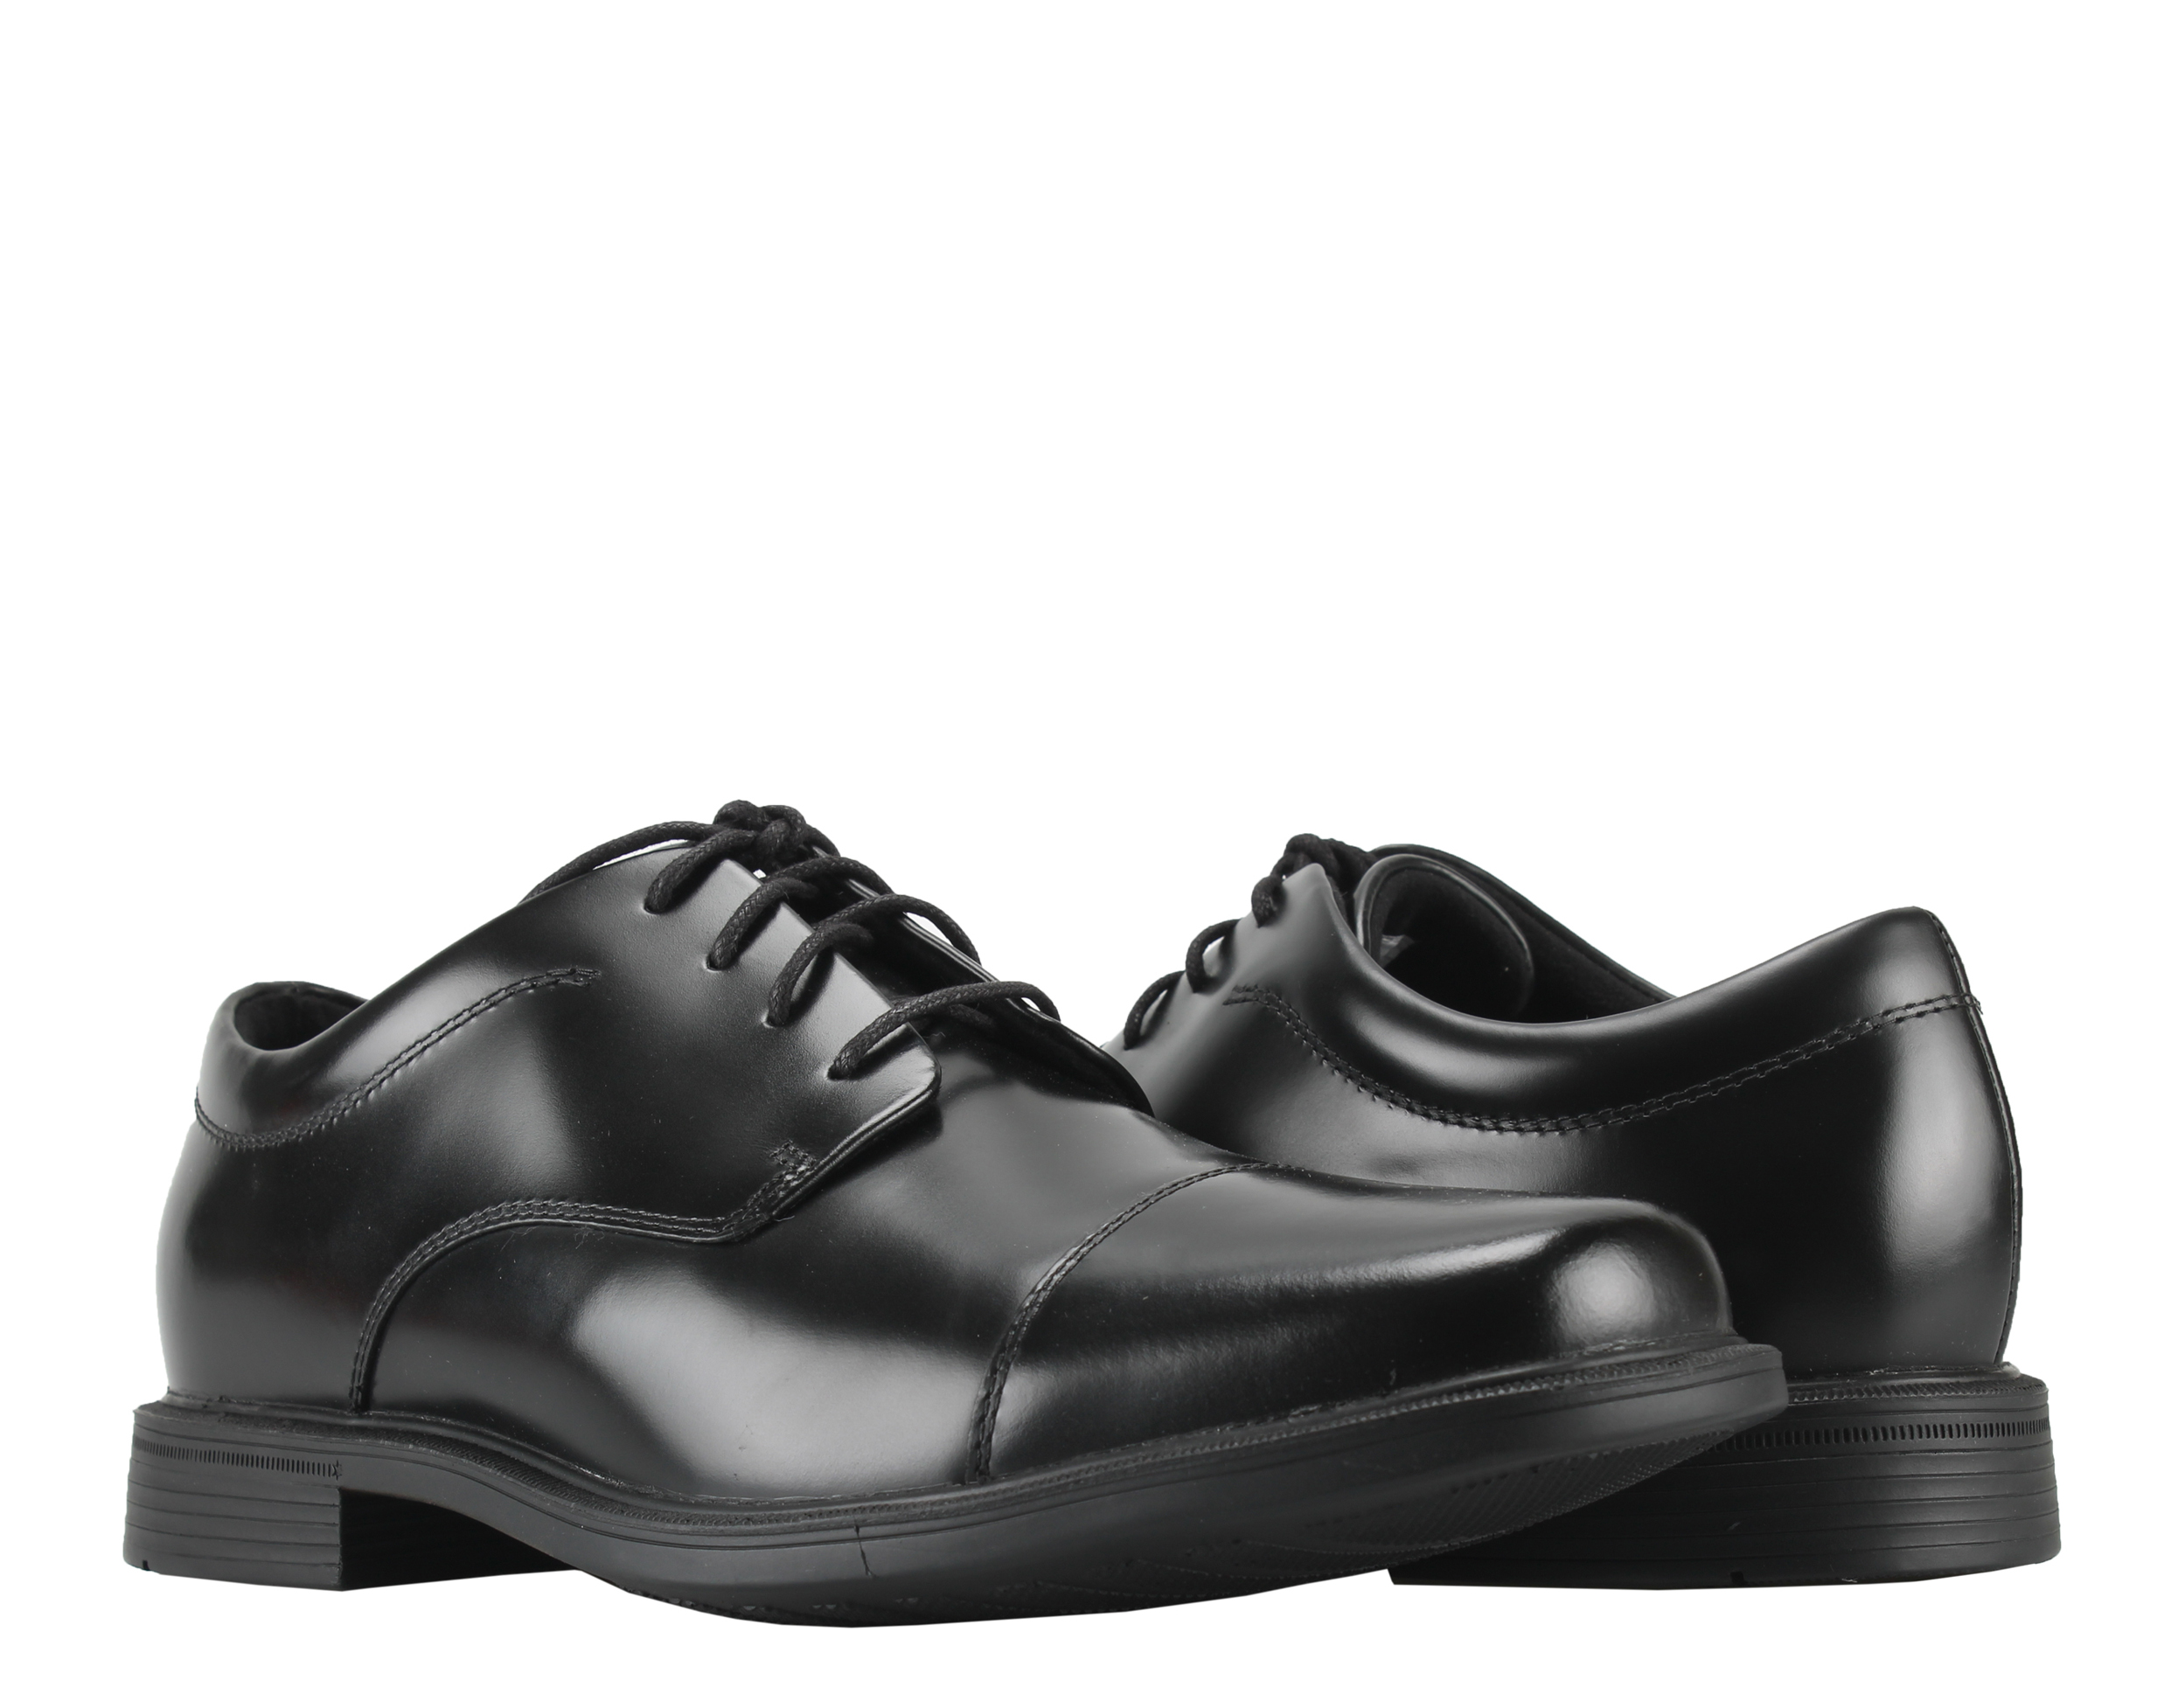 Rockport Ellingwood Cap Toe Black Men's Dress Shoes K71016 by